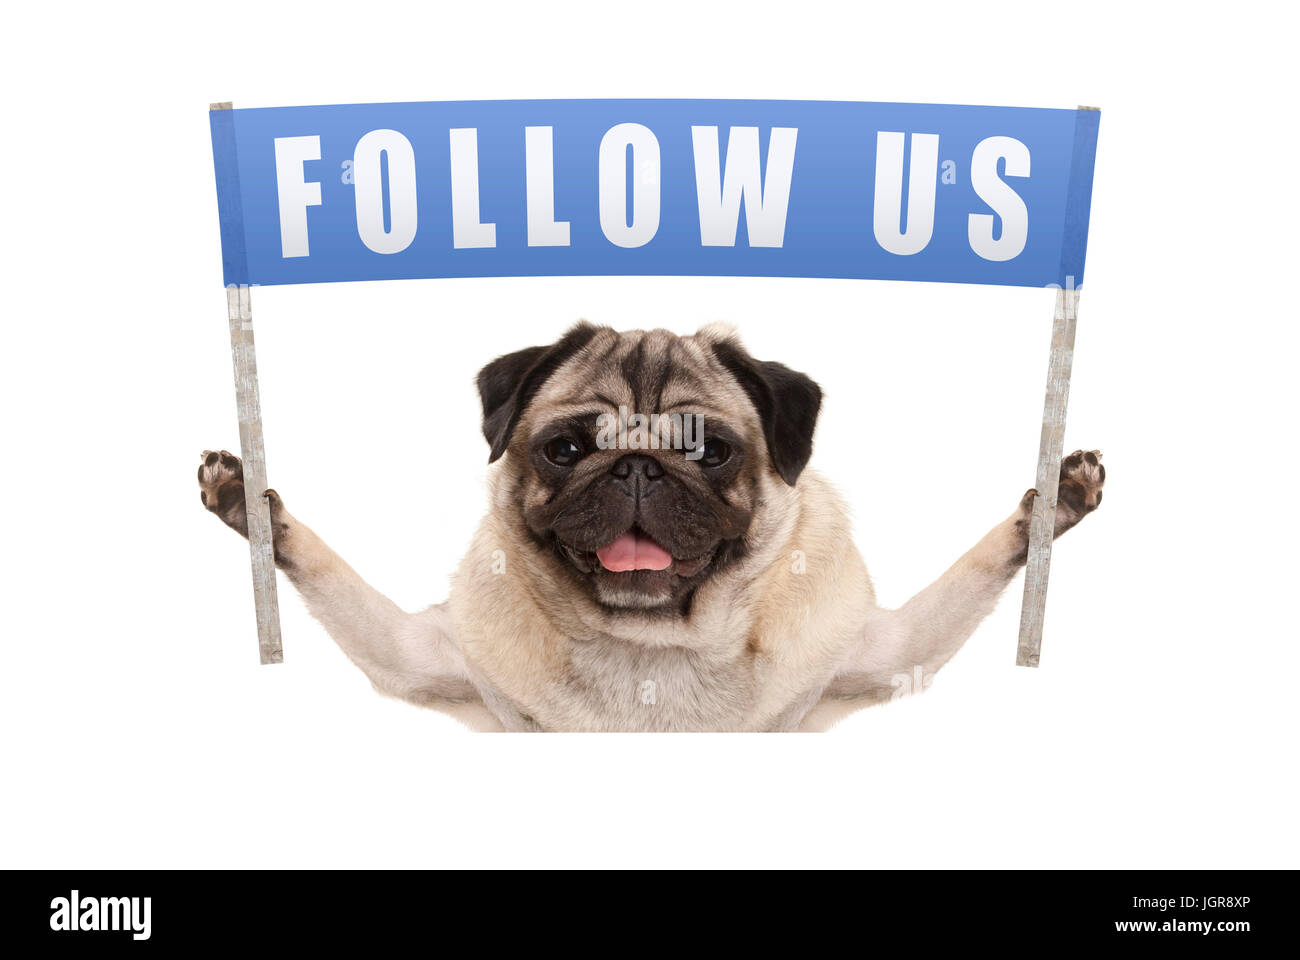 pug puppy dog holding up blue banner with text follow us for social media, isolated on white background Stock Photo